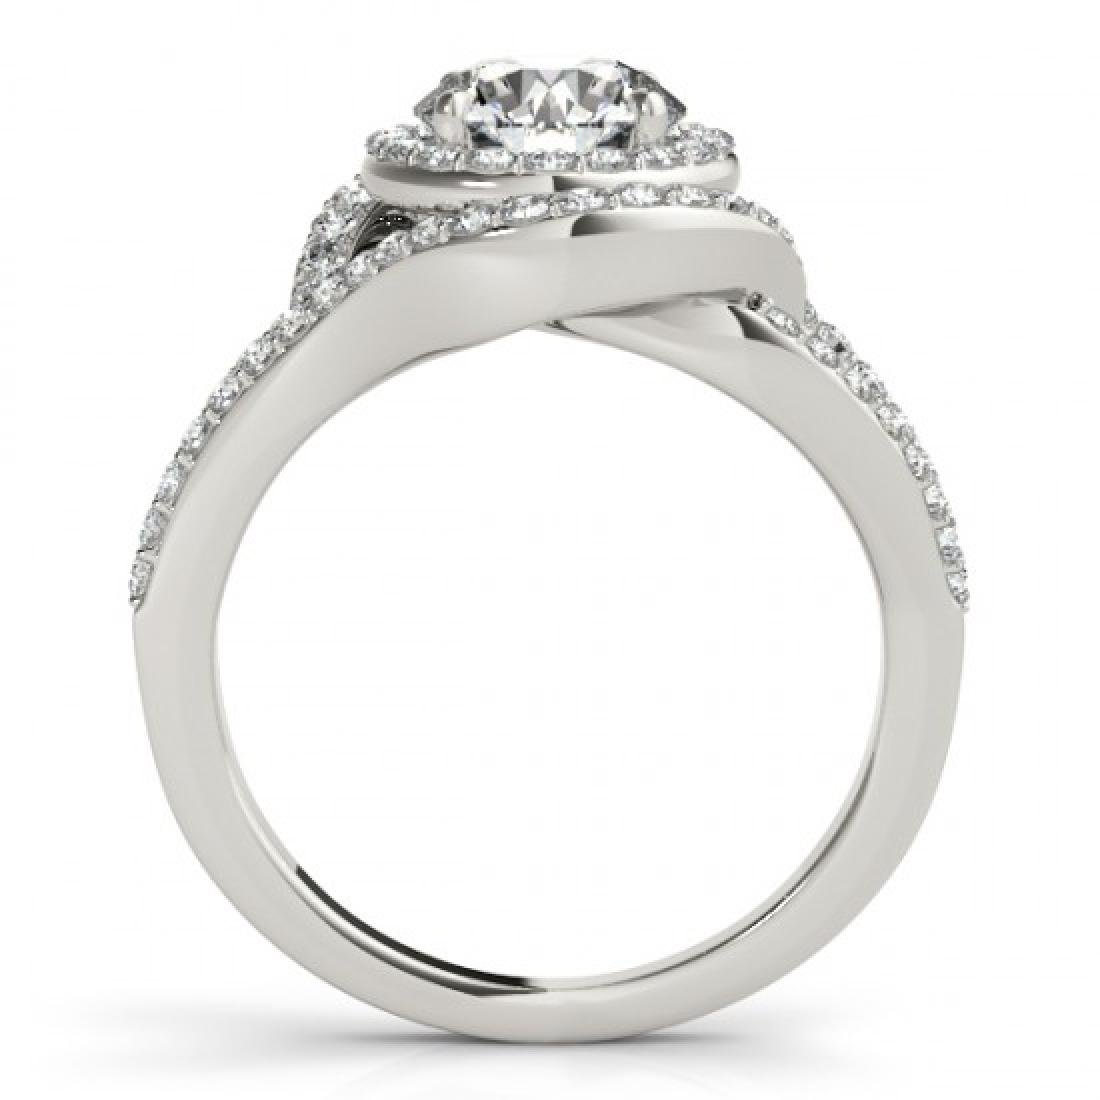 1.9 CTW Certified VS/SI Diamond Solitaire Halo Ring 14K - 2